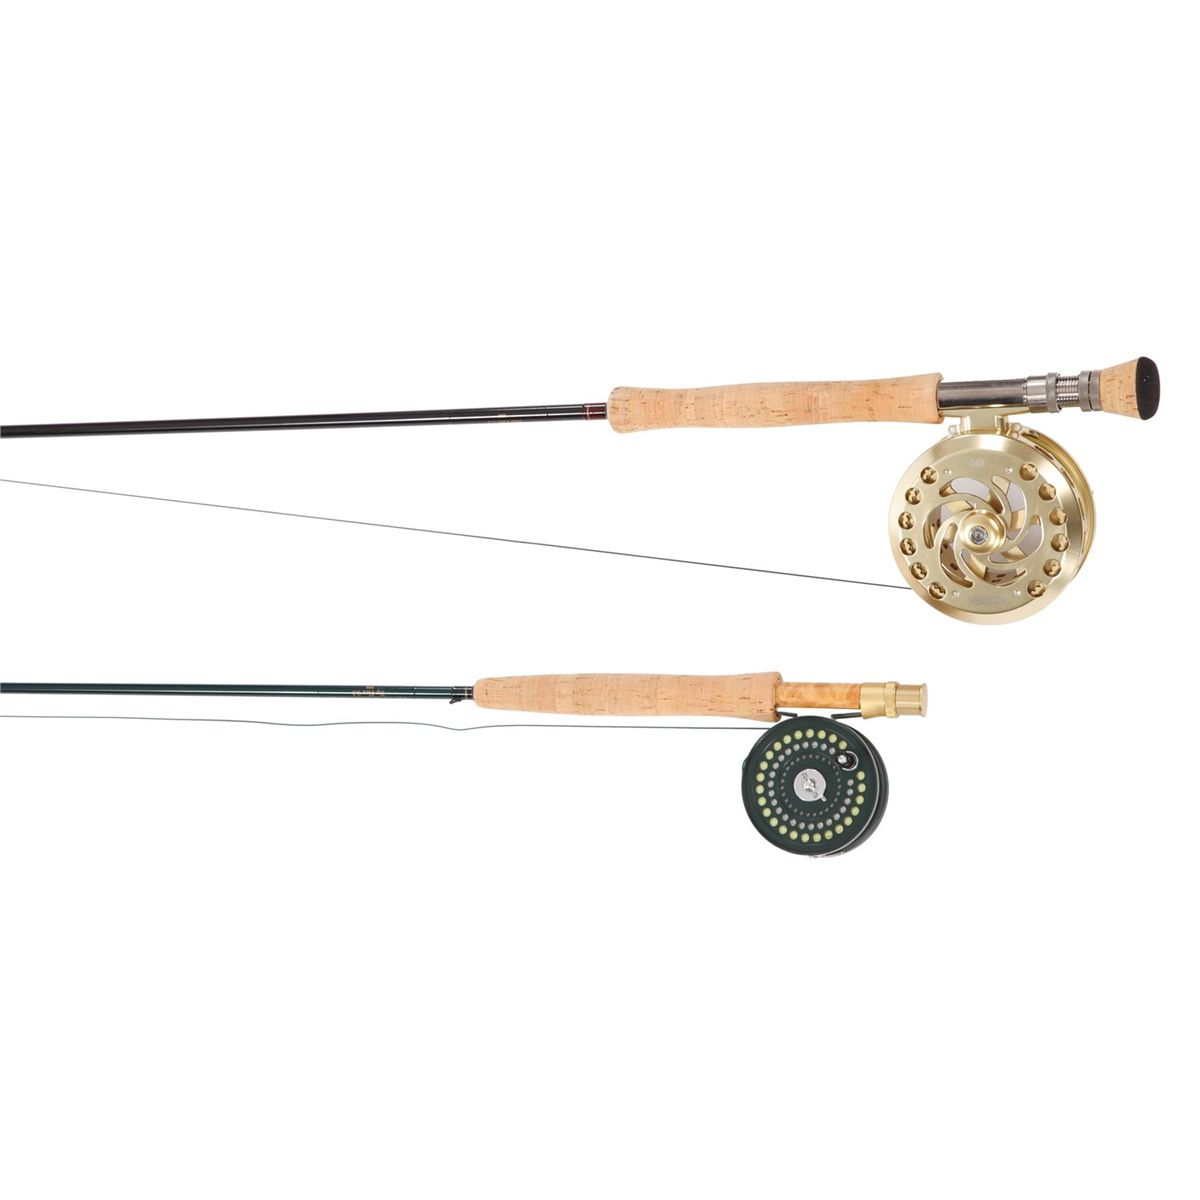 Pair of fly fishing rods and reels in case for Trout fishing rod and reel